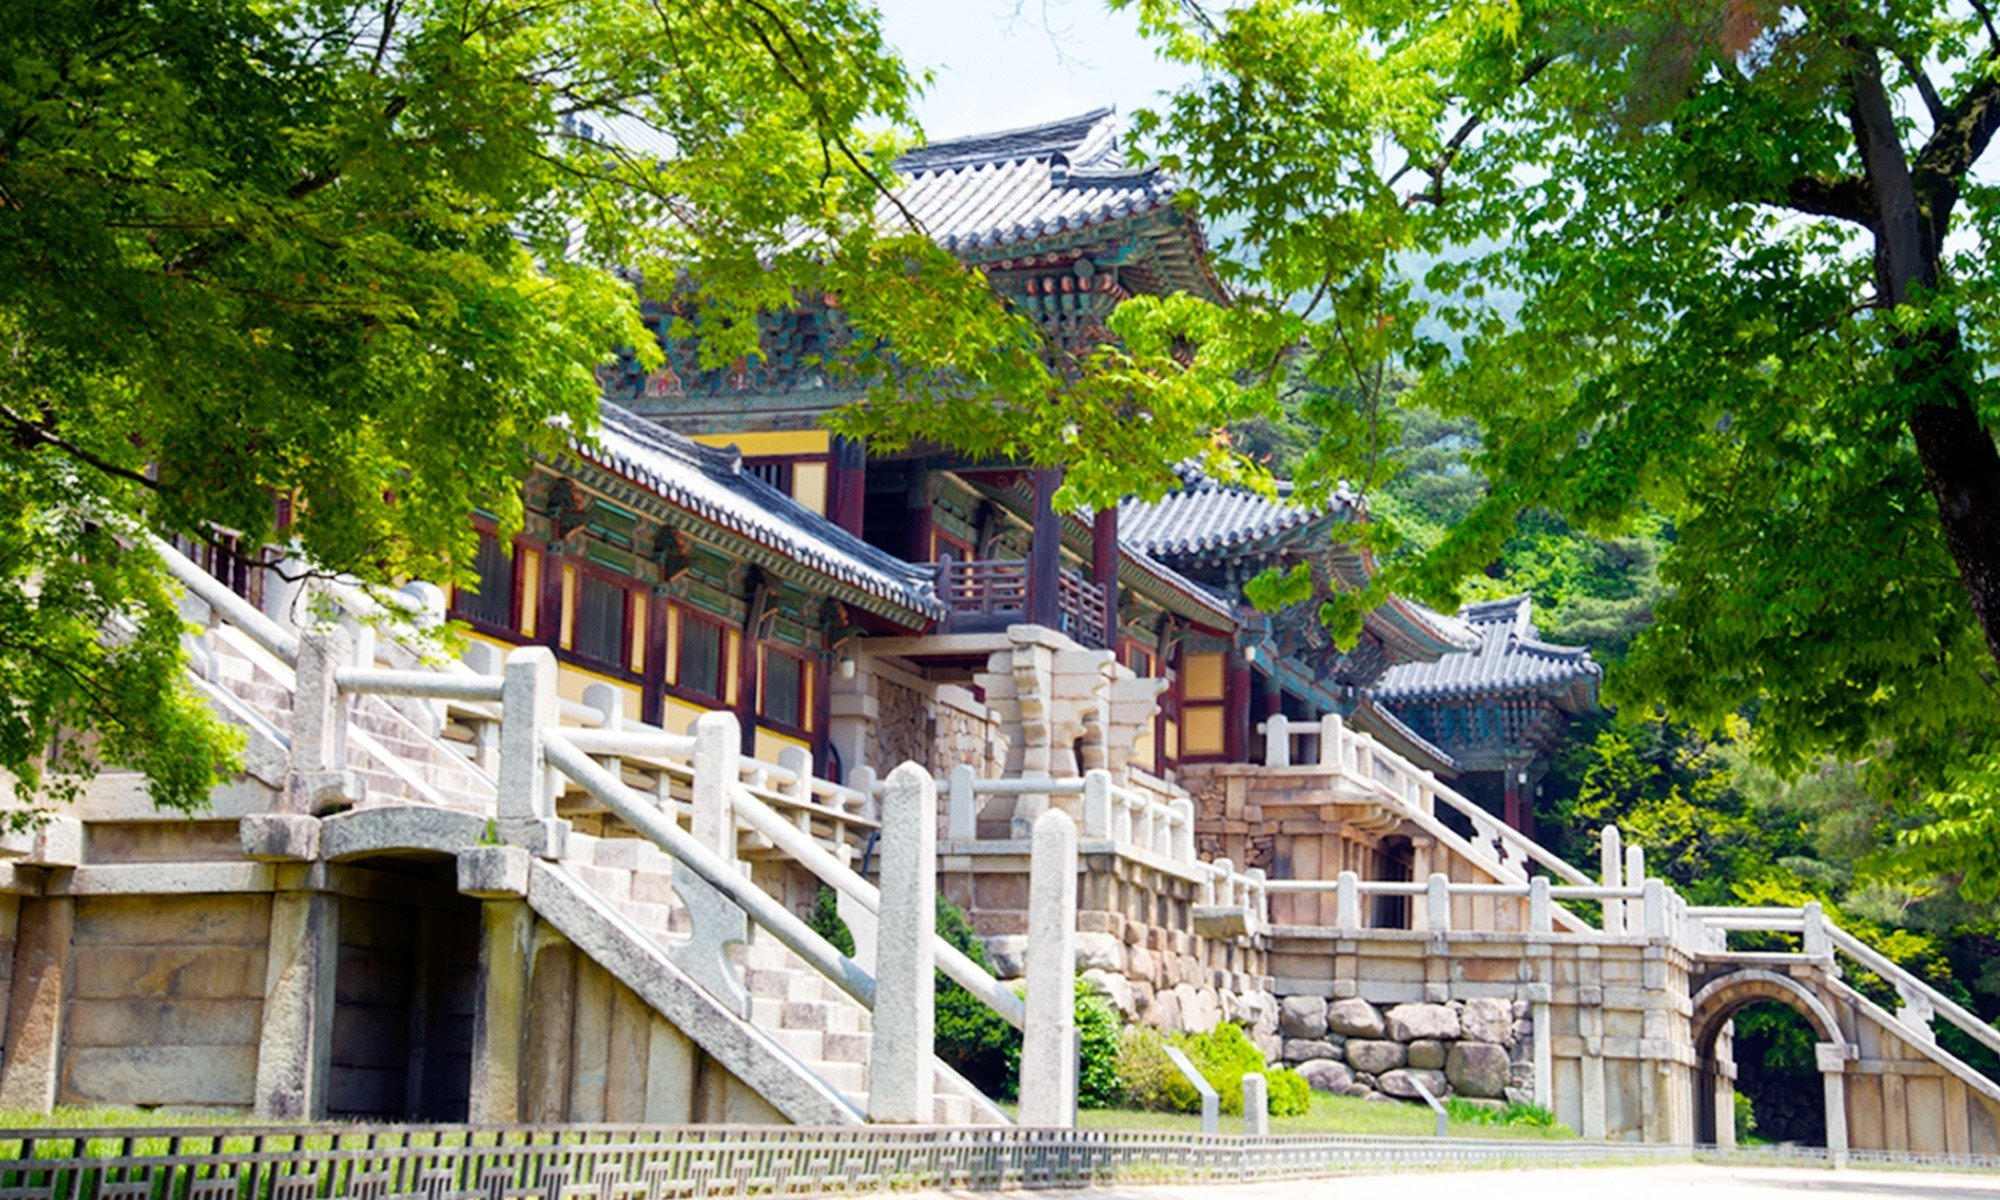 Whether you're into ancient history or Buddhist art – or just want to get away from South Korea's bustling cities – take a day trip to Gyeongju, Korea's ancient capital. It's a full day of art, architecture, and nature.